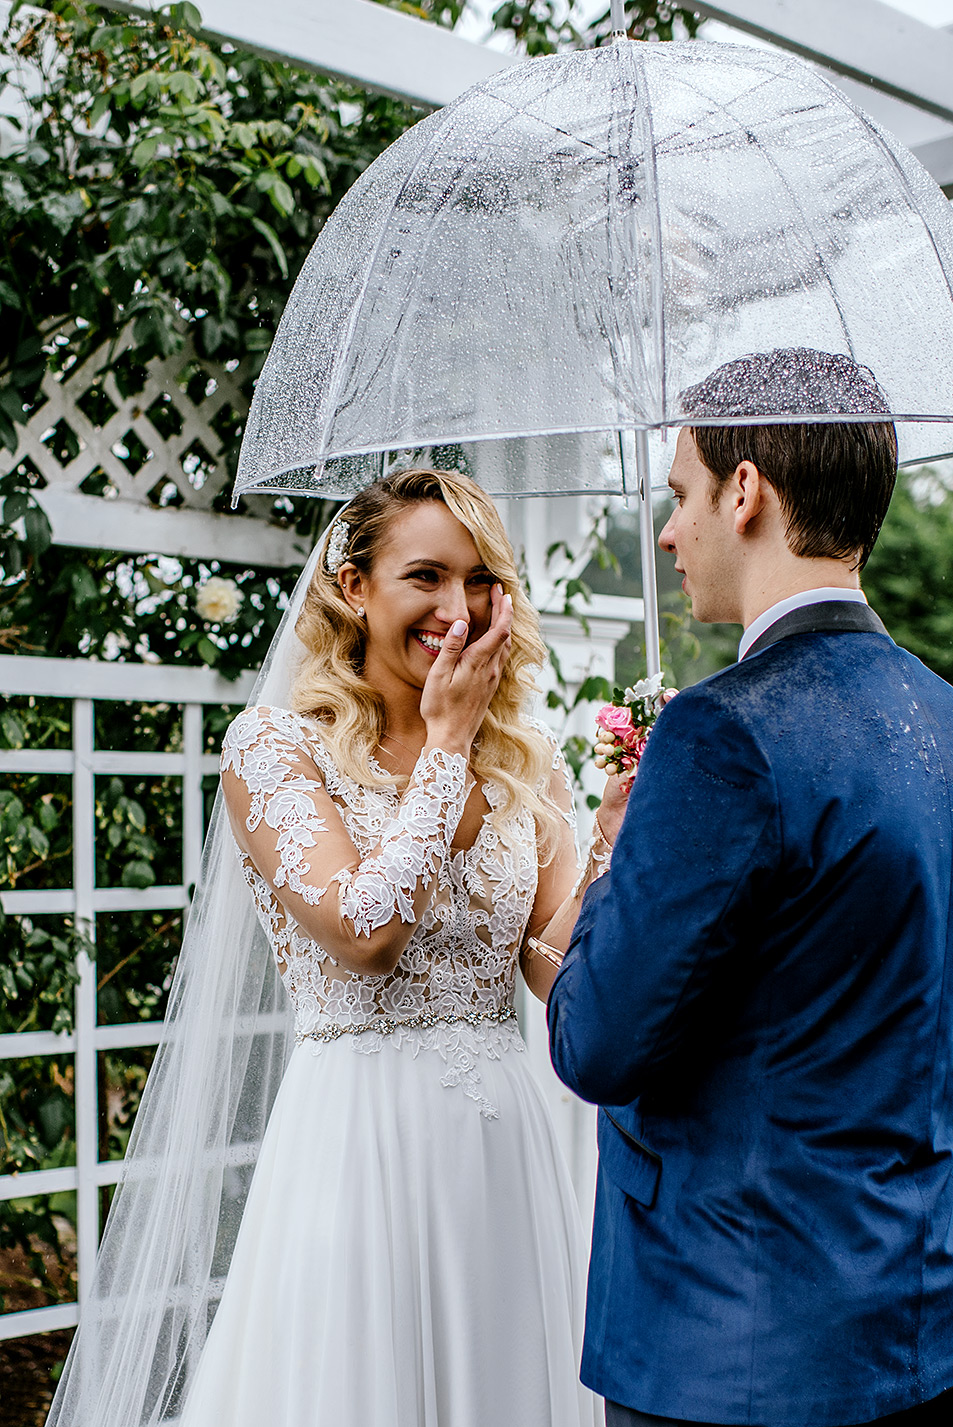 tearful bride during ceremony in the rain